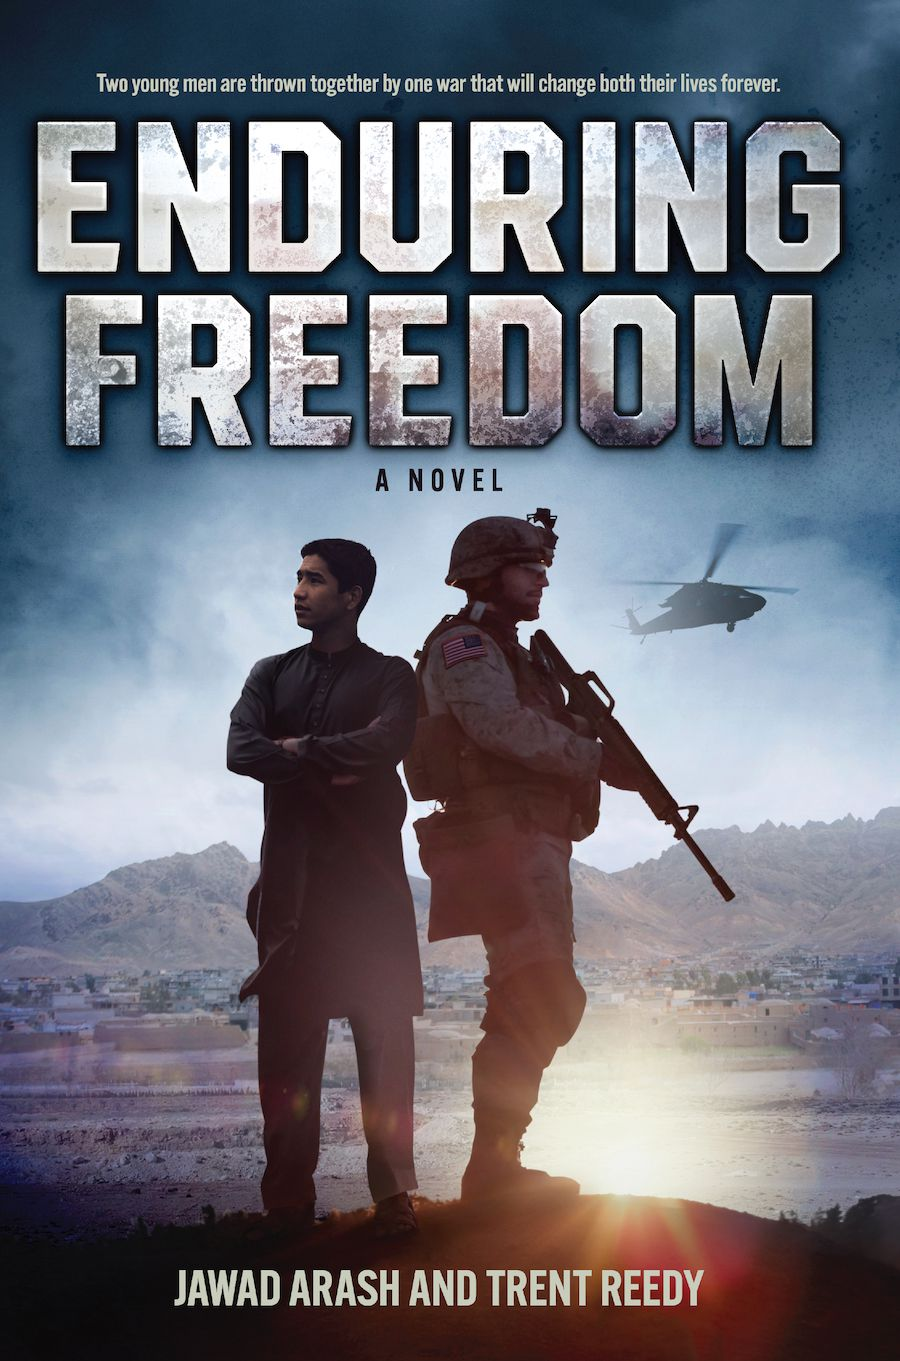 cover image of Enduring Freedom by Jawad Arash and Trent Reedy